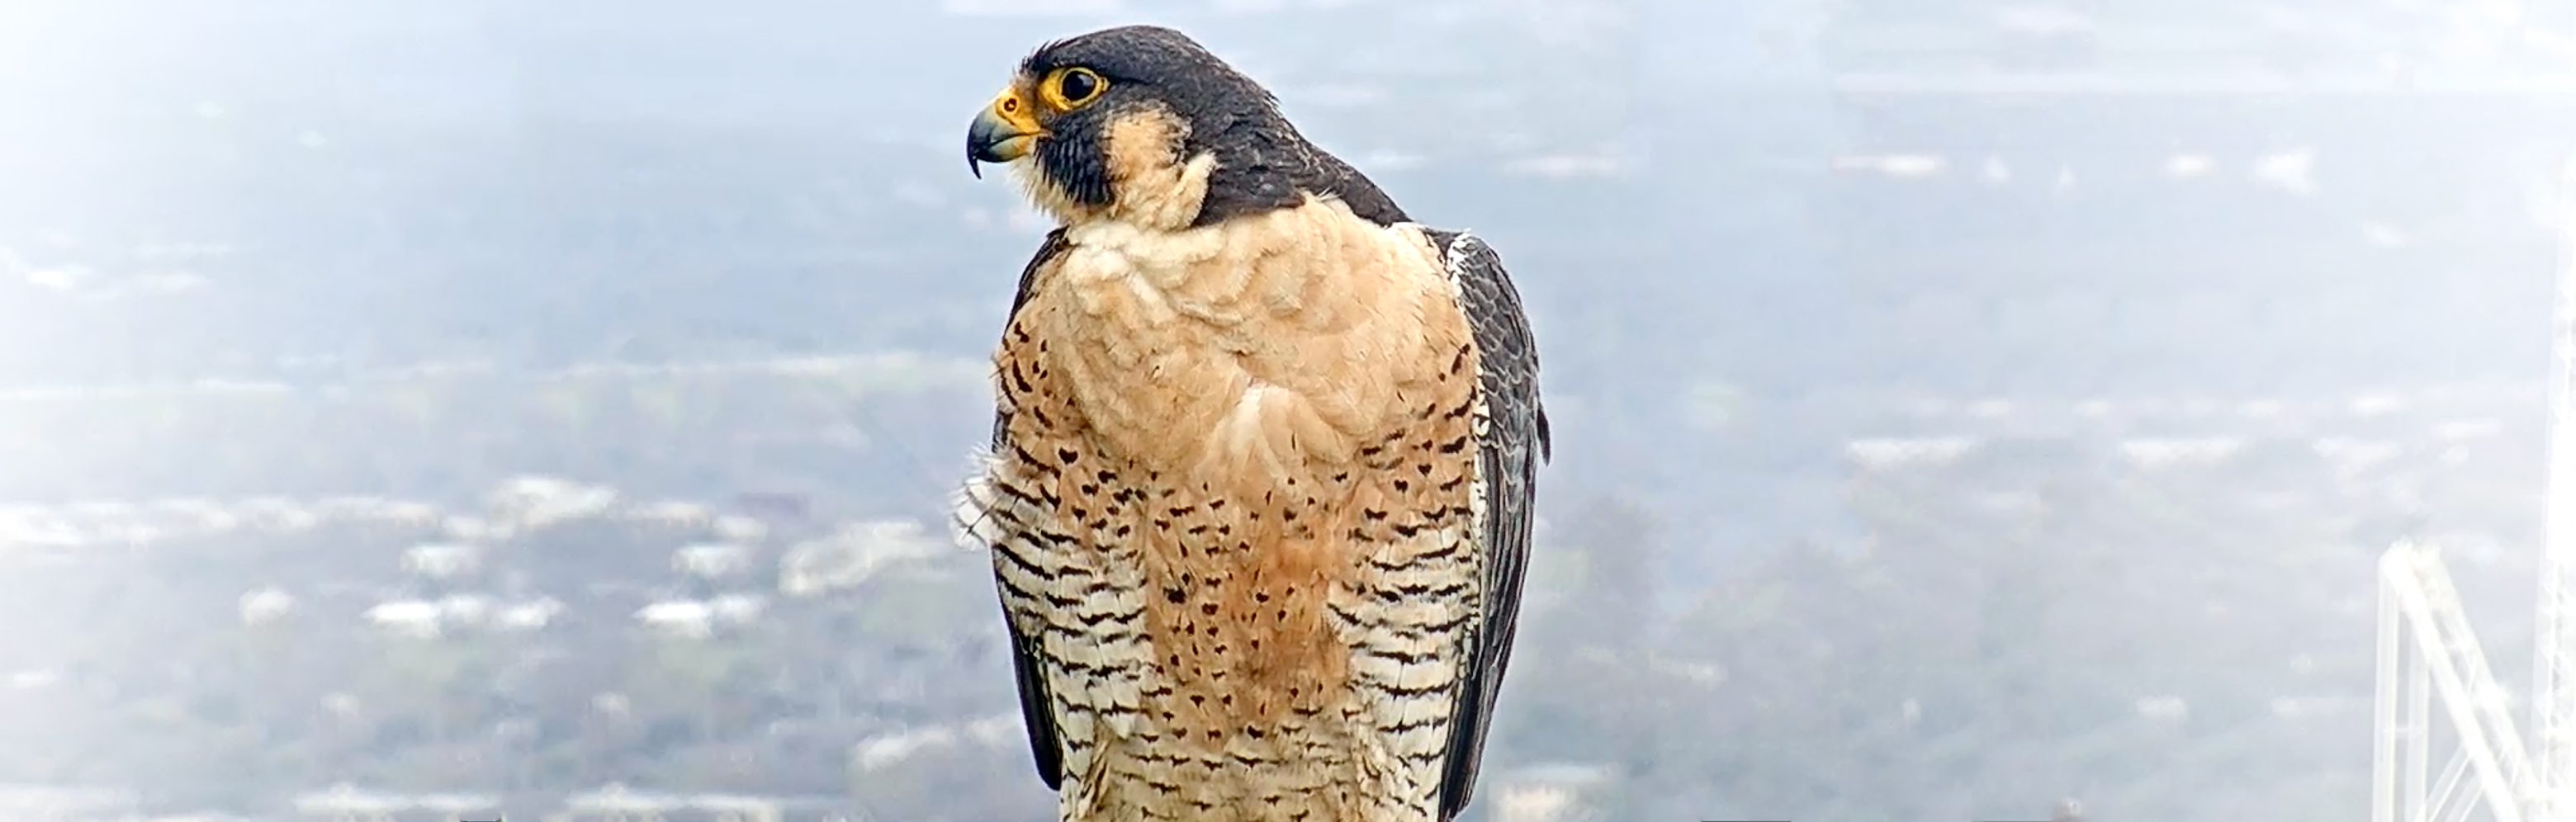 UT Tower Falcon